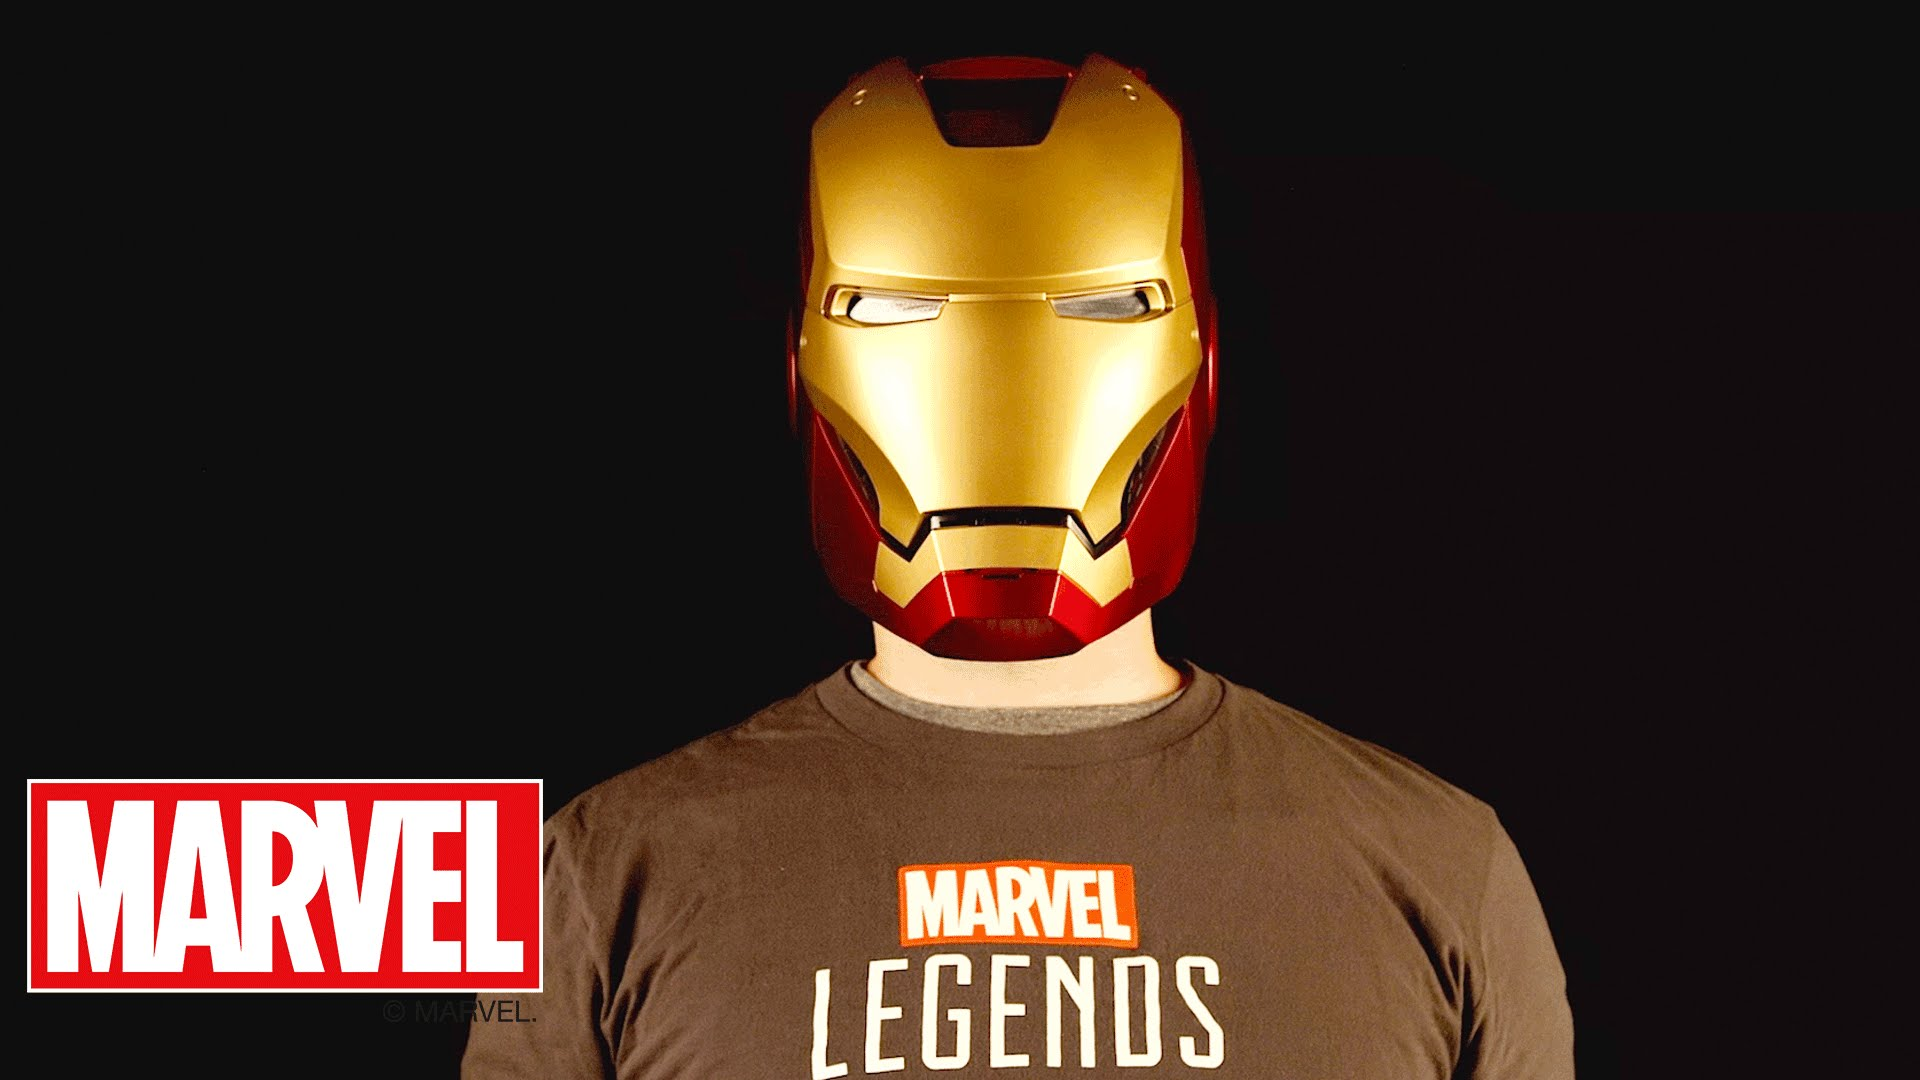 Marvel Legends Series: il casco di Iron Man e lo scudo di Captain America